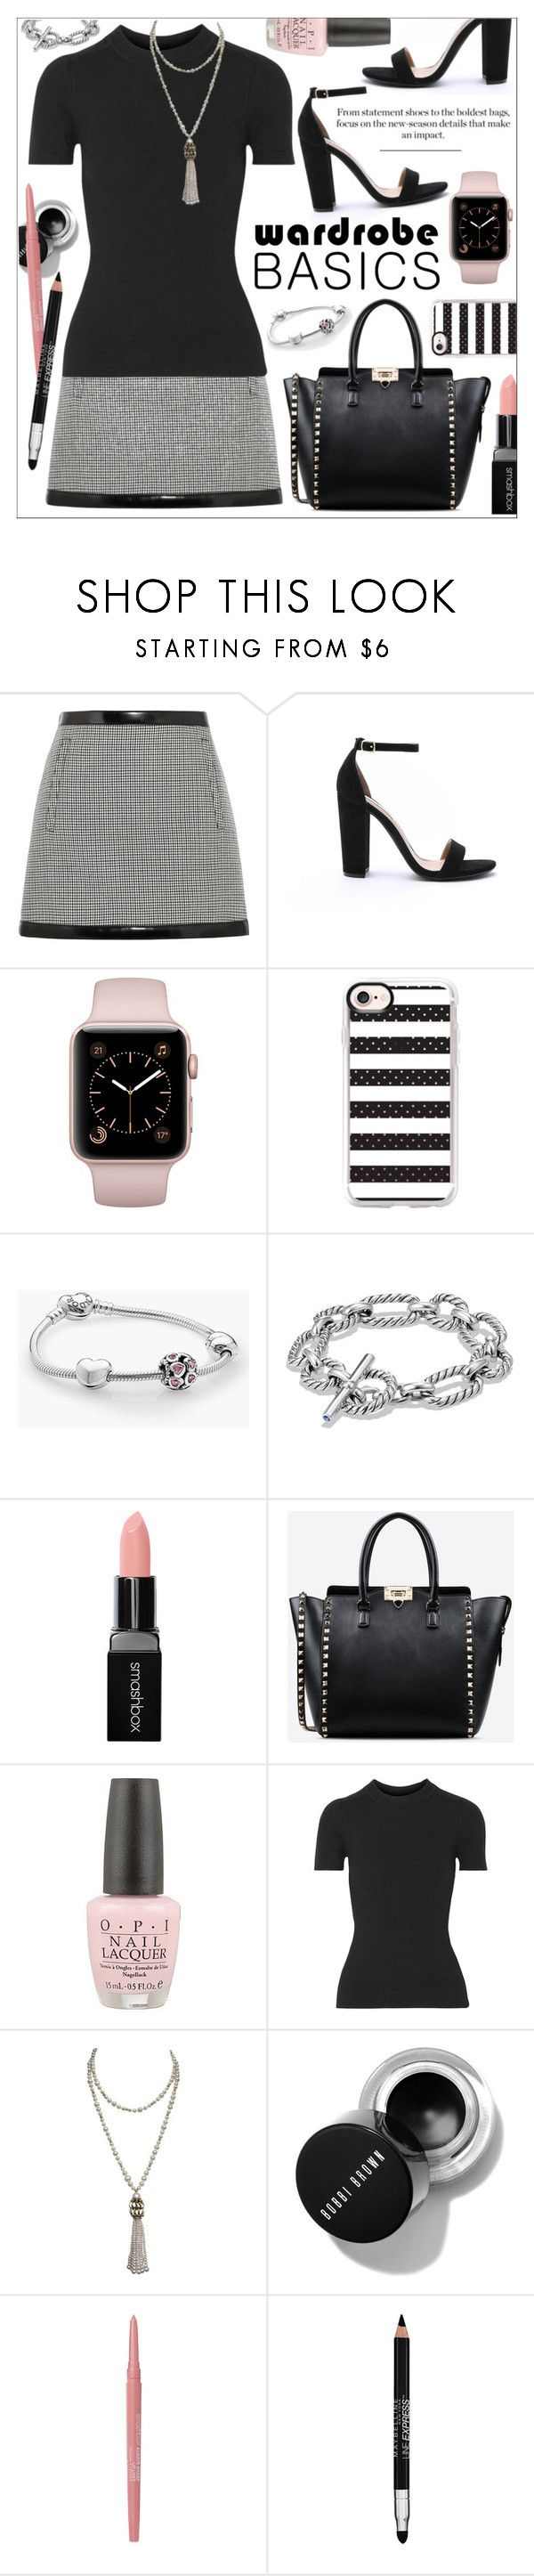 """Tried and True  Wardrobe Staples"" by calamity-jane-always ❤ liked on Polyvore featuring Philosophy di Lorenzo Serafini, Steve Madden, Casetify, Pandora, David Yurman, Smashbox, Valentino, JoosTricot, Marina J. and Maybelline"